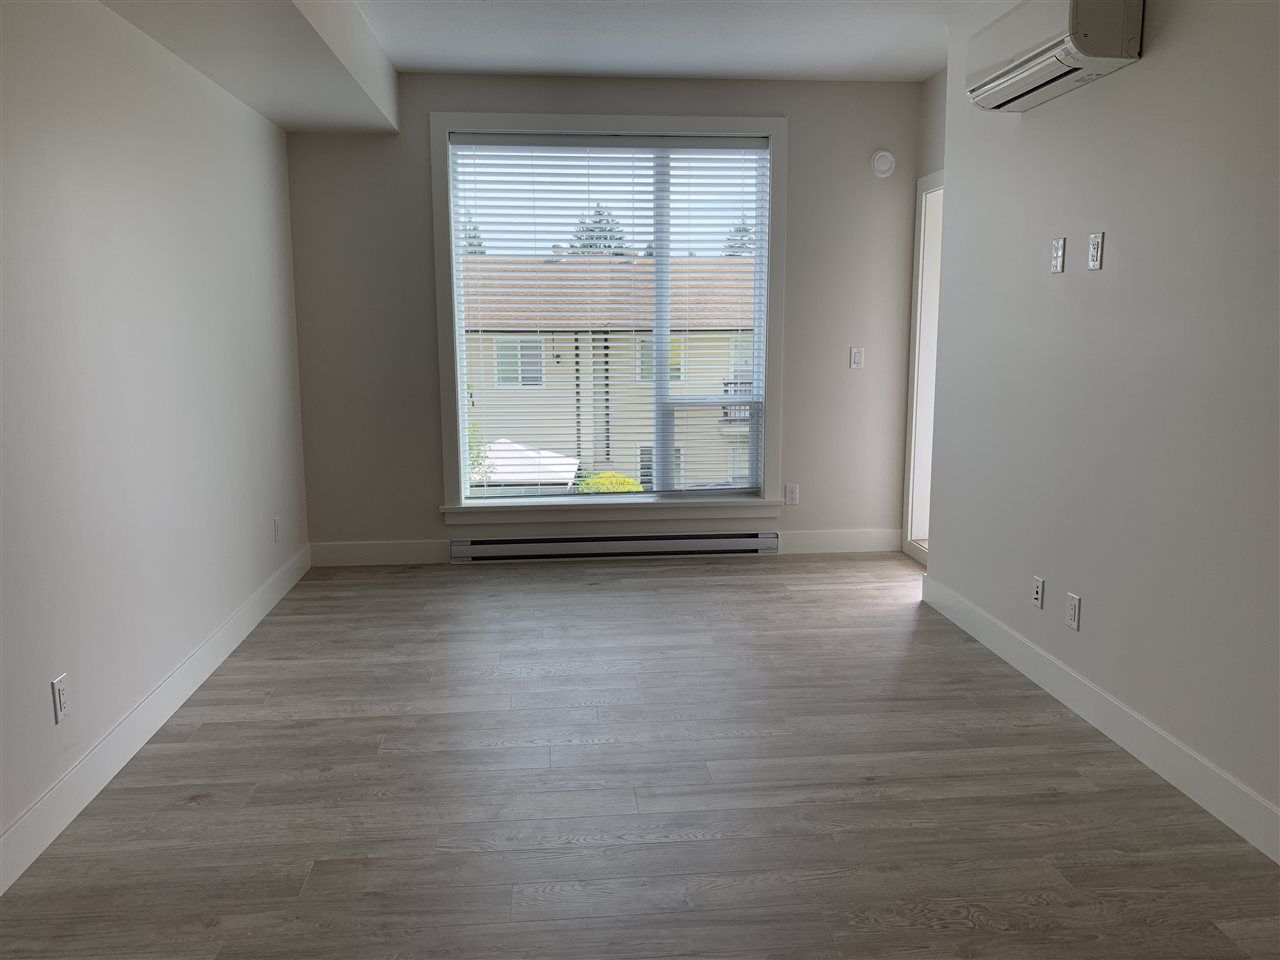 """Photo 4: Photos: 206 2555 WARE Street in Abbotsford: Central Abbotsford Condo for sale in """"MILL DISTRICT"""" : MLS®# R2502197"""